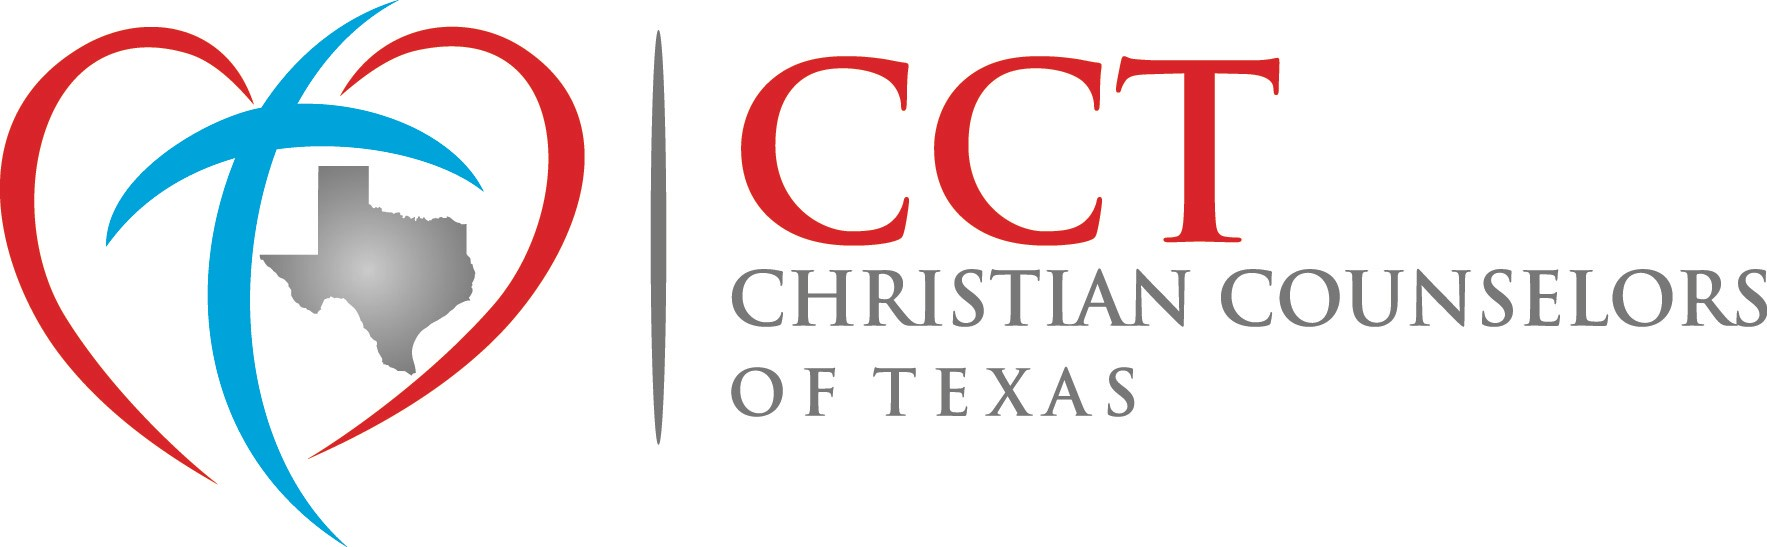 Christian Counselors of Texas